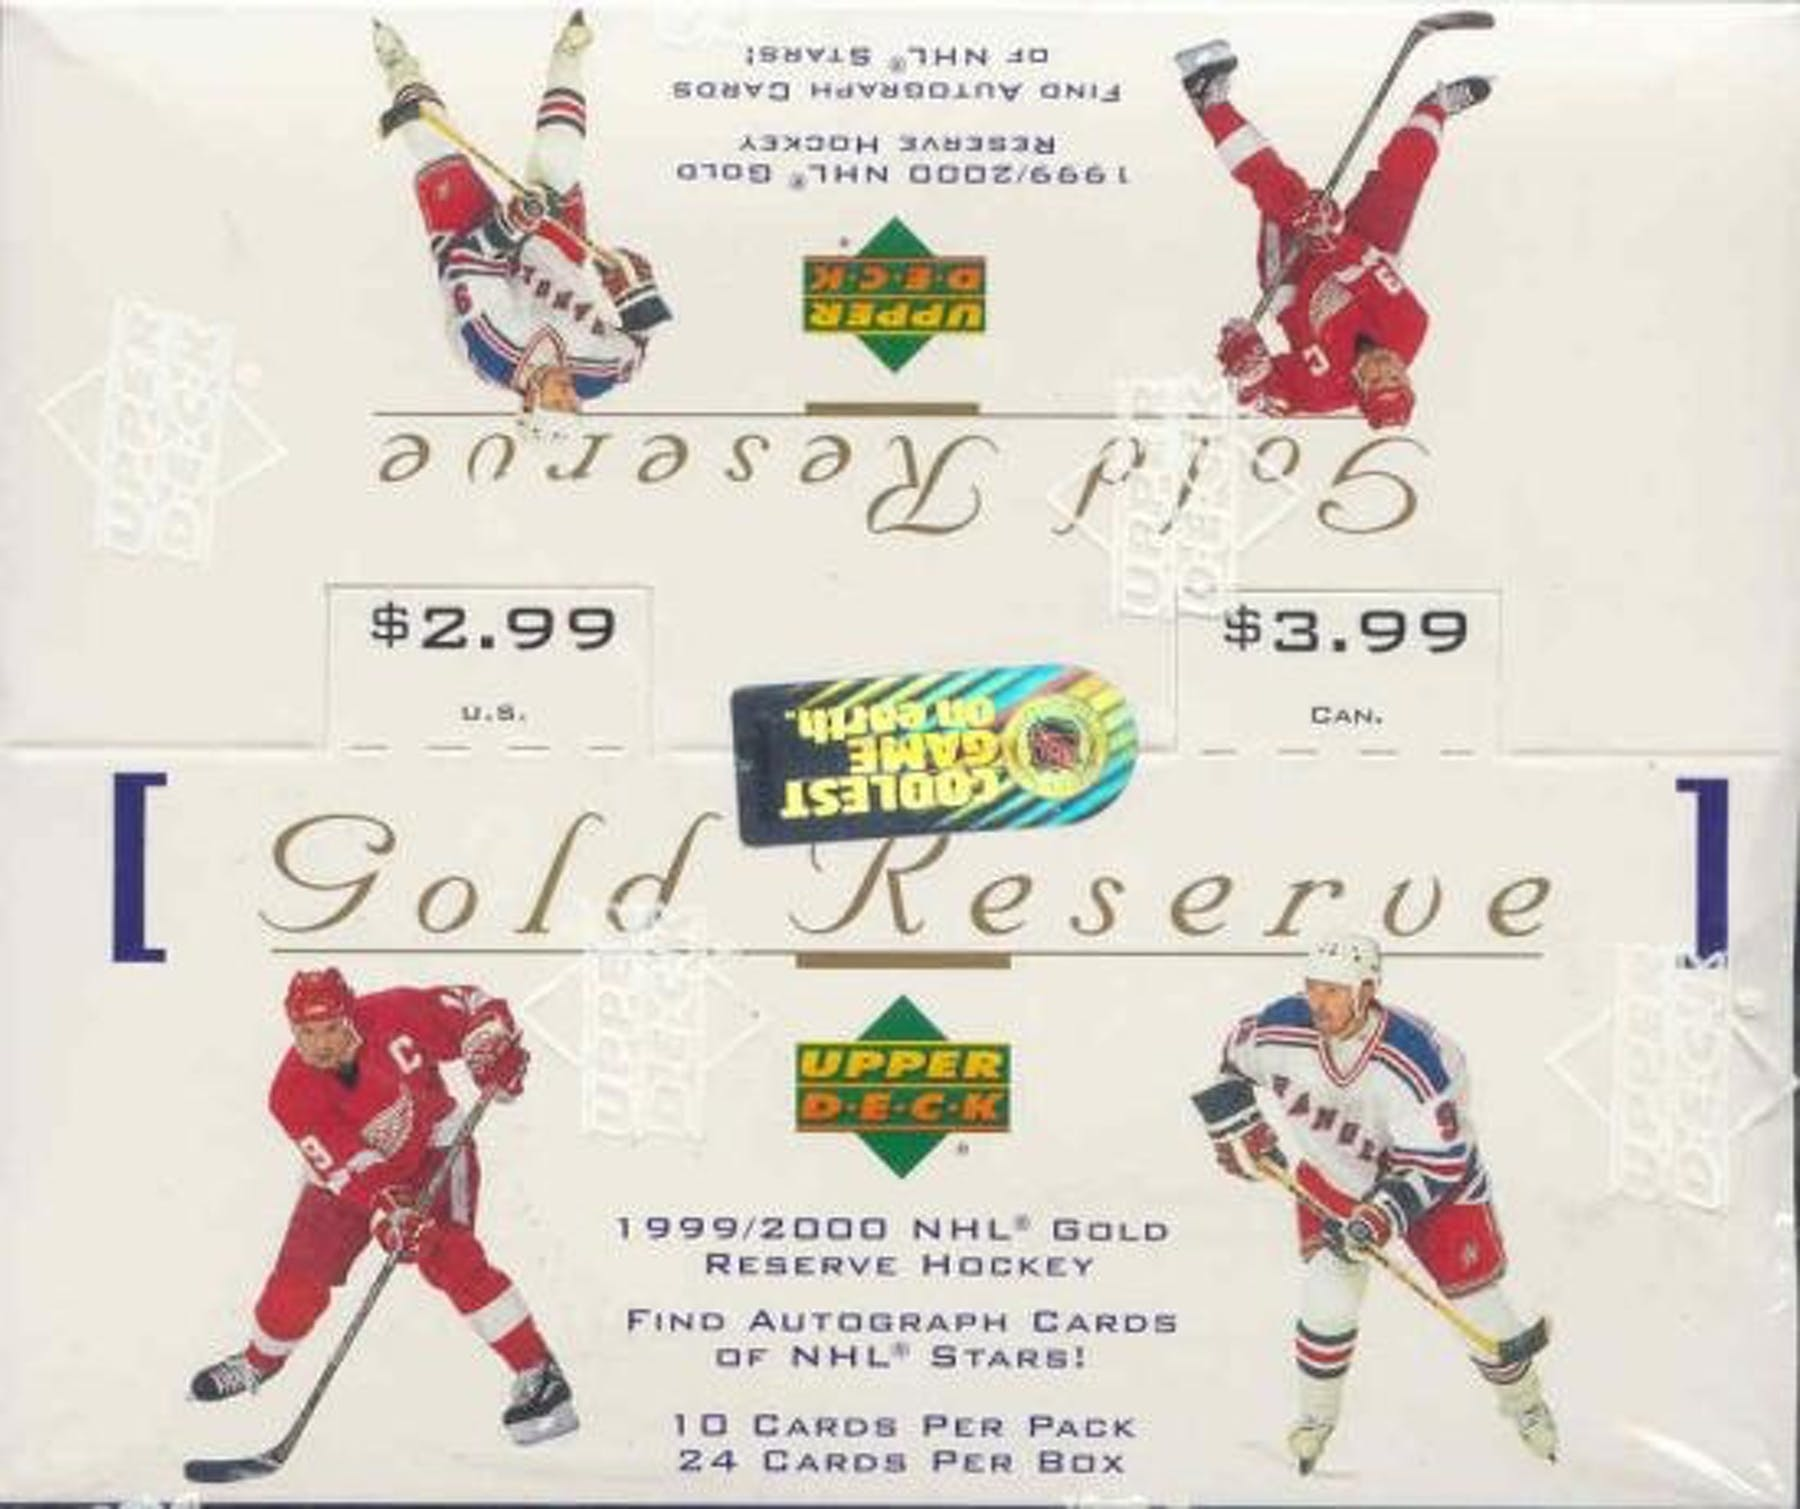 1999-00 Upper Deck Gold Reserve Series 1 Hockey Box